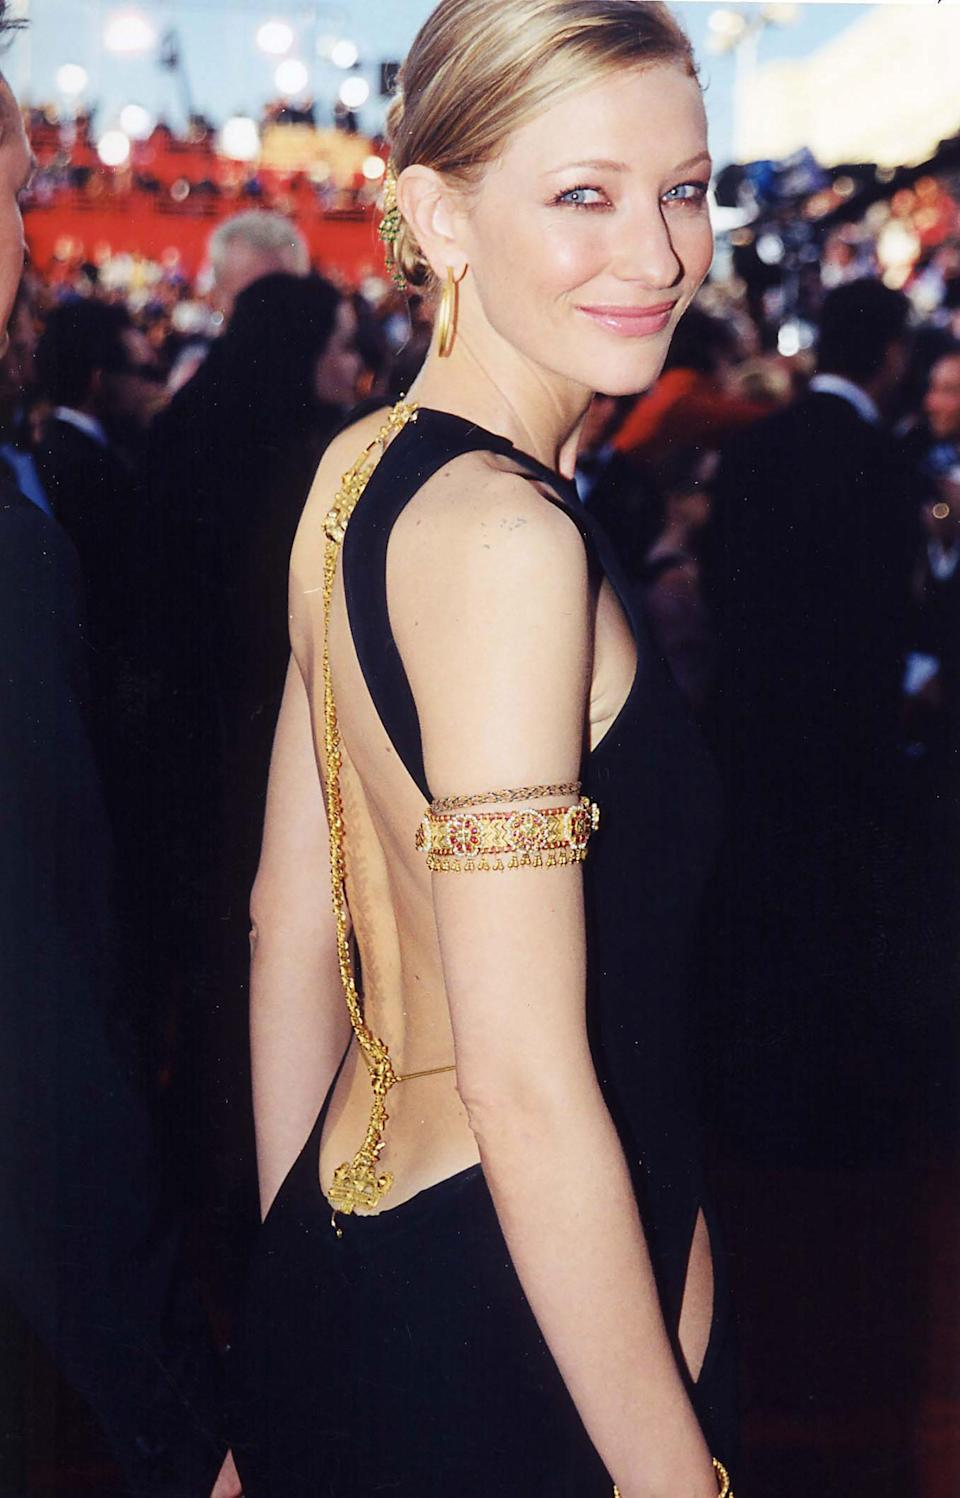 Even in 2000, Cate Blanchett was ahead of the curve. The actress arrived in the perfect combination of dress and jewels, with a Jean Paul Gaultier black gown accented by Cynthia Bach's bangles and body chain. Inspired by traditional jewelry from the Indian subcontinent, Bach created an impressive array of golden accents.